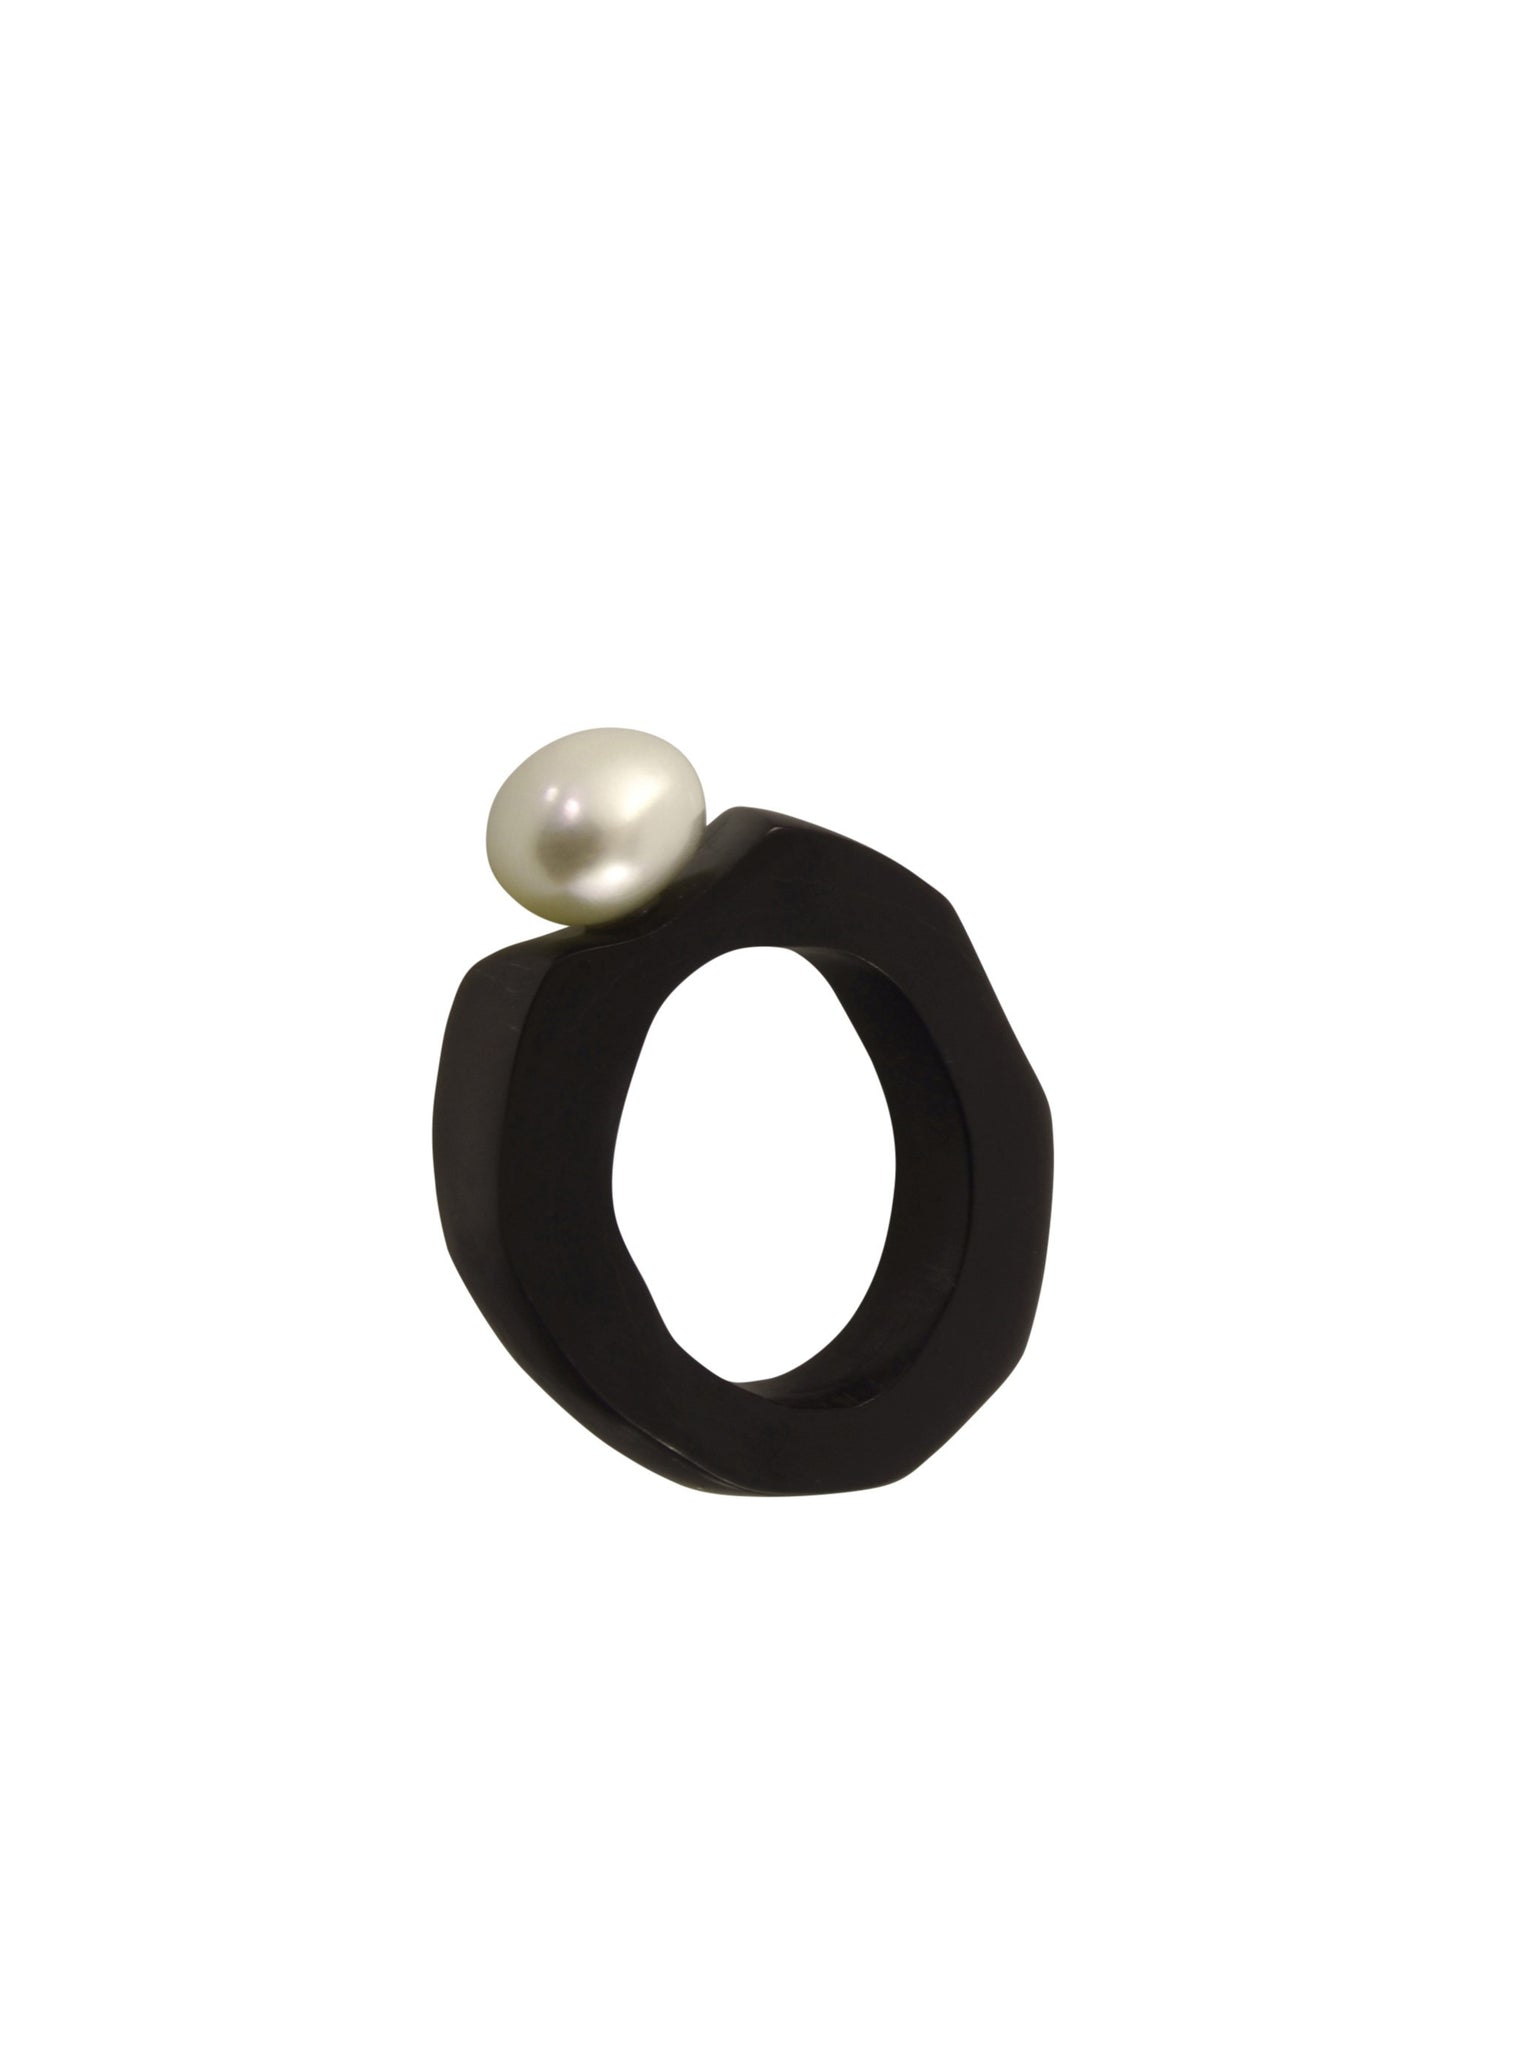 Buffalo horn rings by janine combes contemporary jeweller